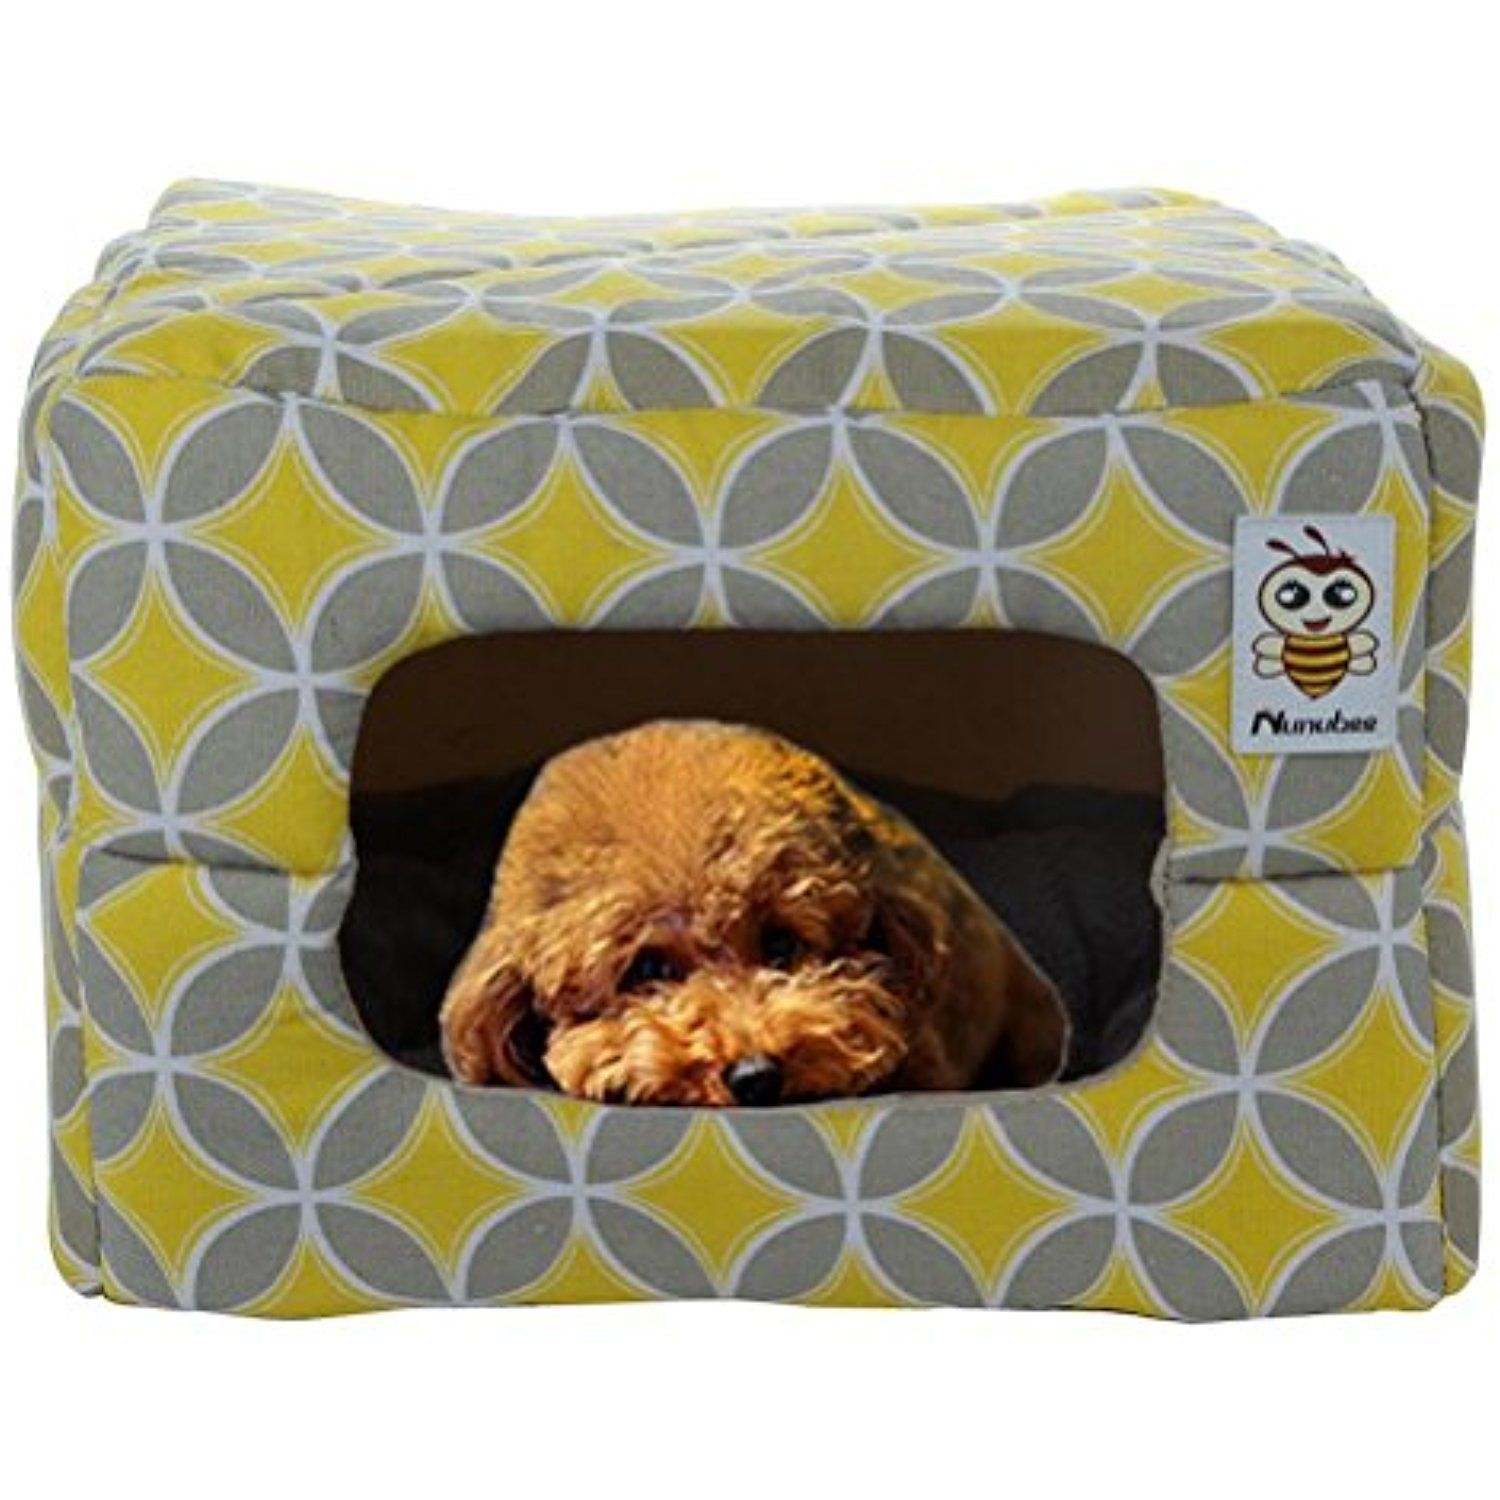 nunubee owl animal bed canvas pet bed triangle dog kennel pet nest